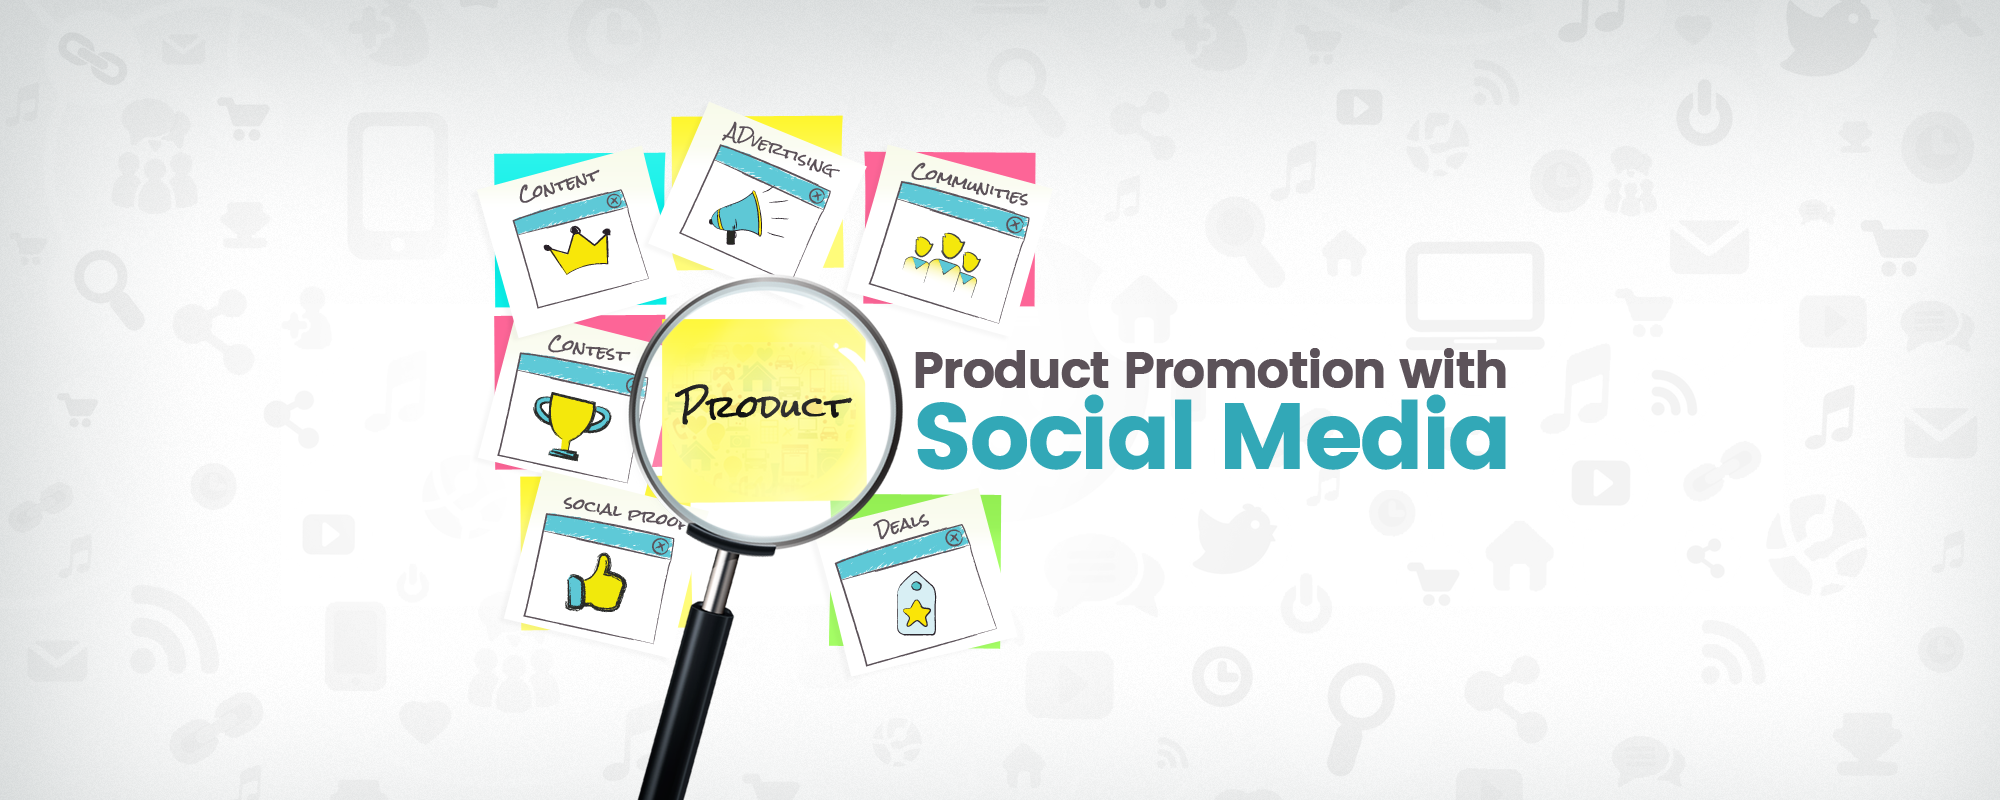 6 Creative Ways to Promote Your Product on Social Media